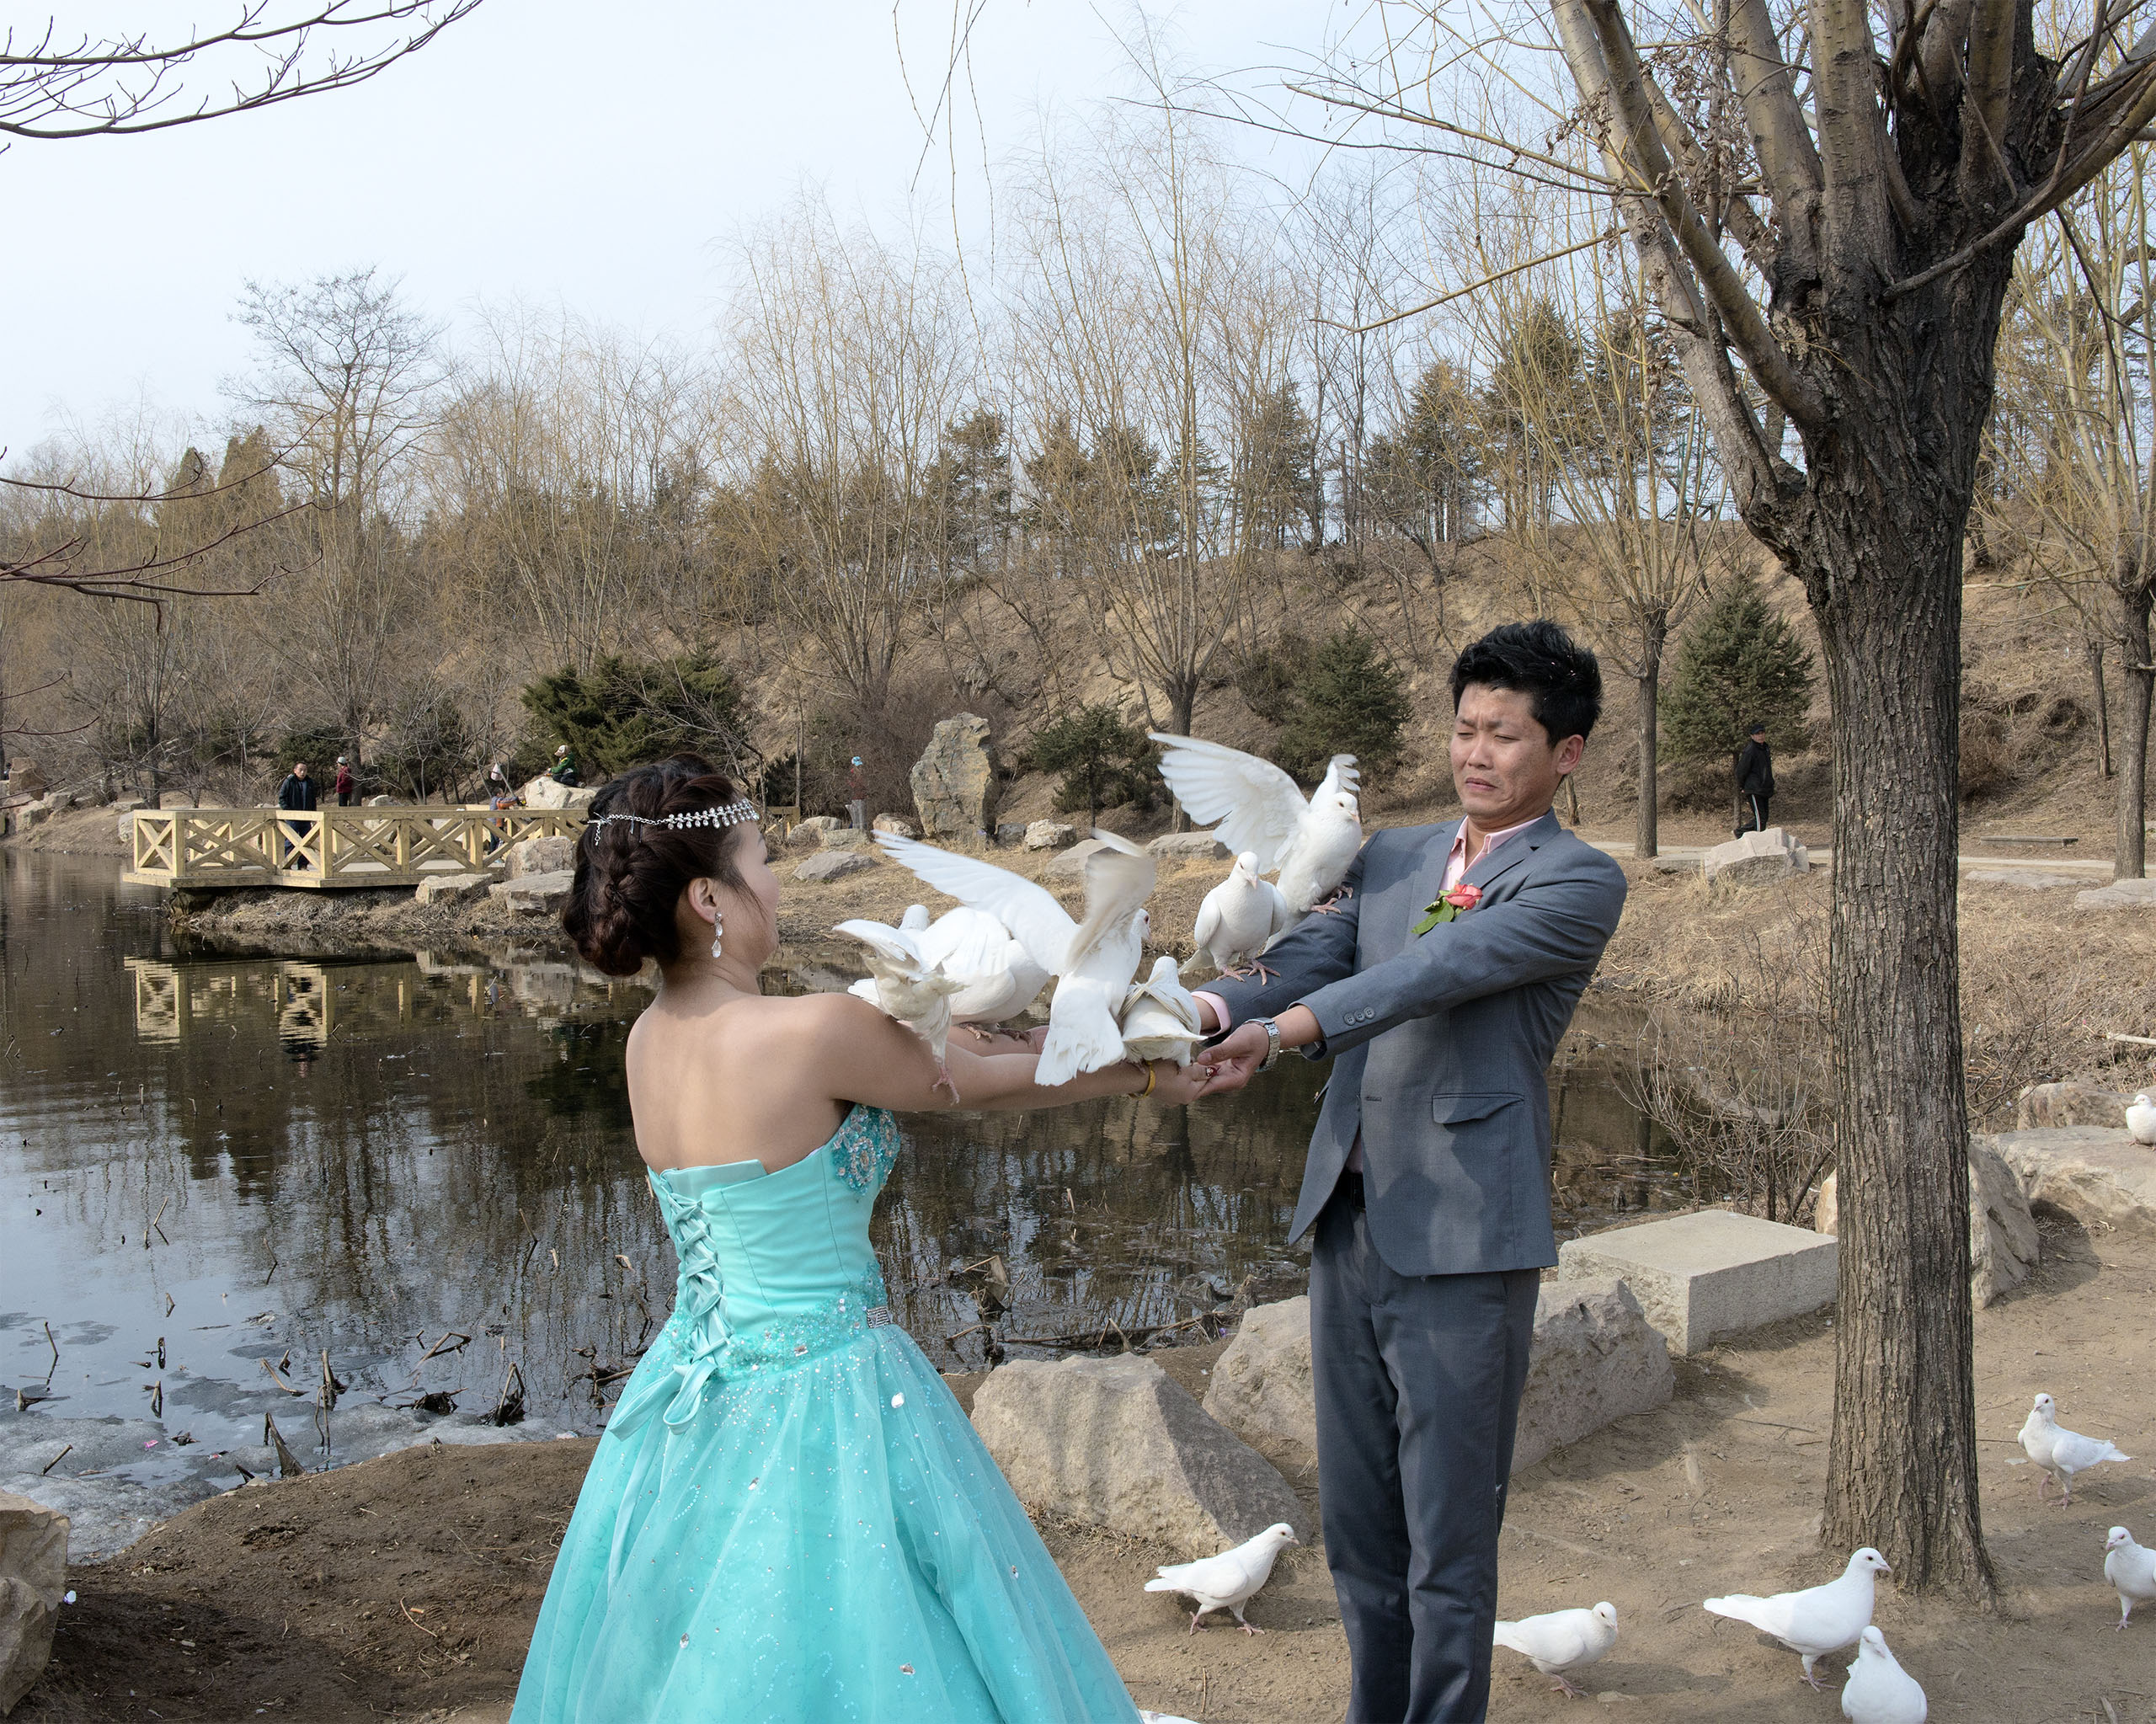 A newly married couple poses with white pigeons for a photo shoot in Dandong, China.  Dandong is situated on the banks of the Yalu River, a short distance from North Korea.